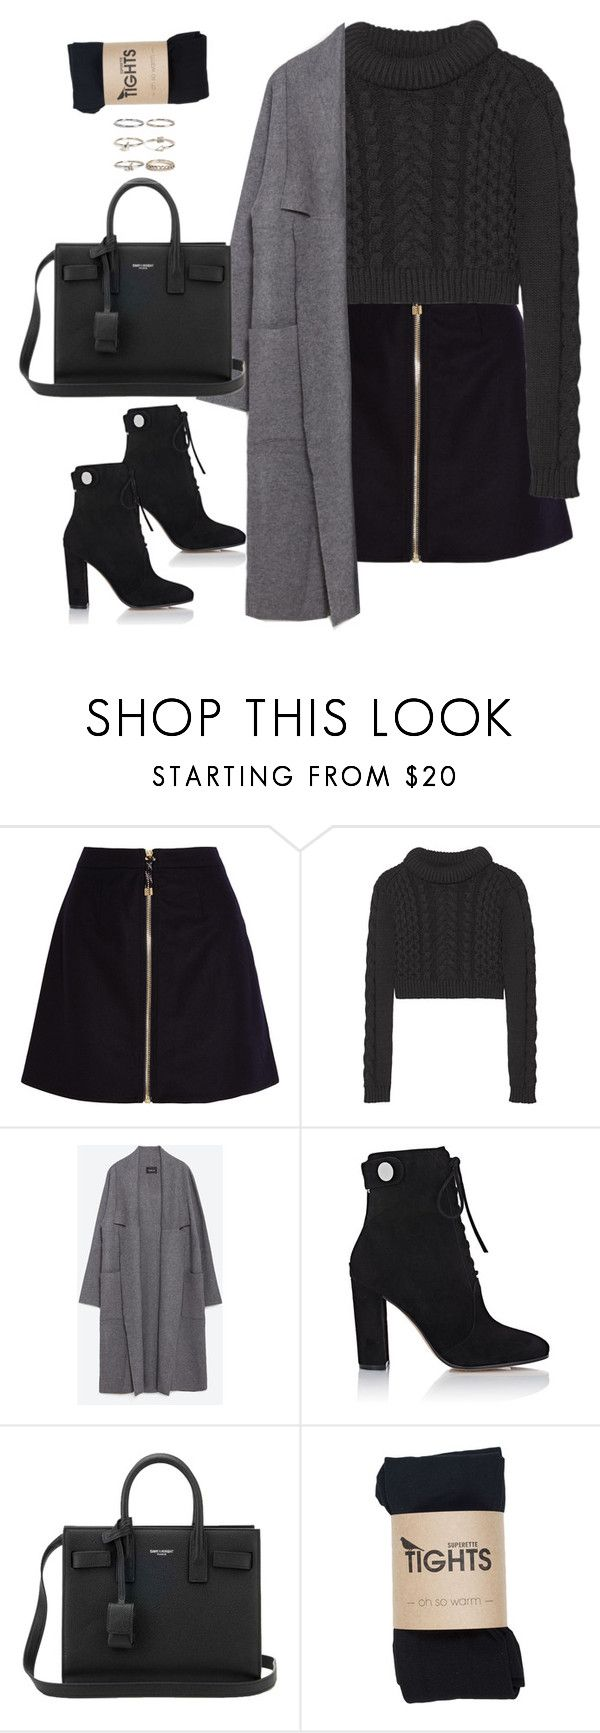 """""""Untitled#4614"""" by fashionnfacts ❤ liked on Polyvore featuring Acne Studios, TIBI, Zara, Gianvito Rossi, Yves Saint Laurent and Boohoo"""